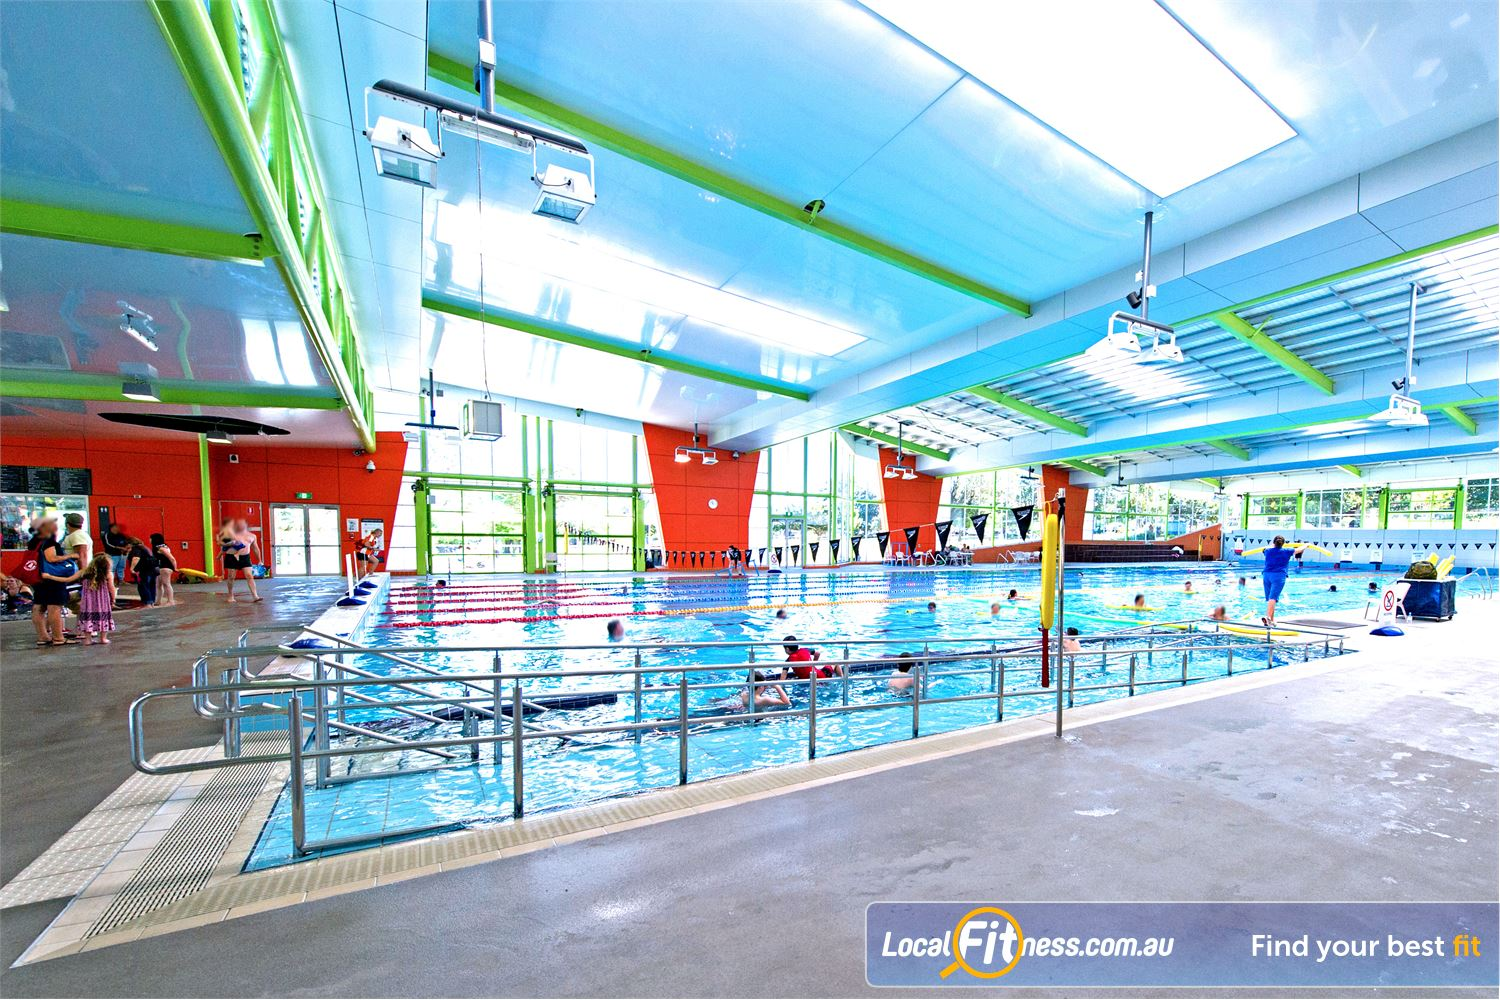 Annette Kellerman Aquatic Centre Marrickville With 8 lanes this is a perfect destination for lap swimming.